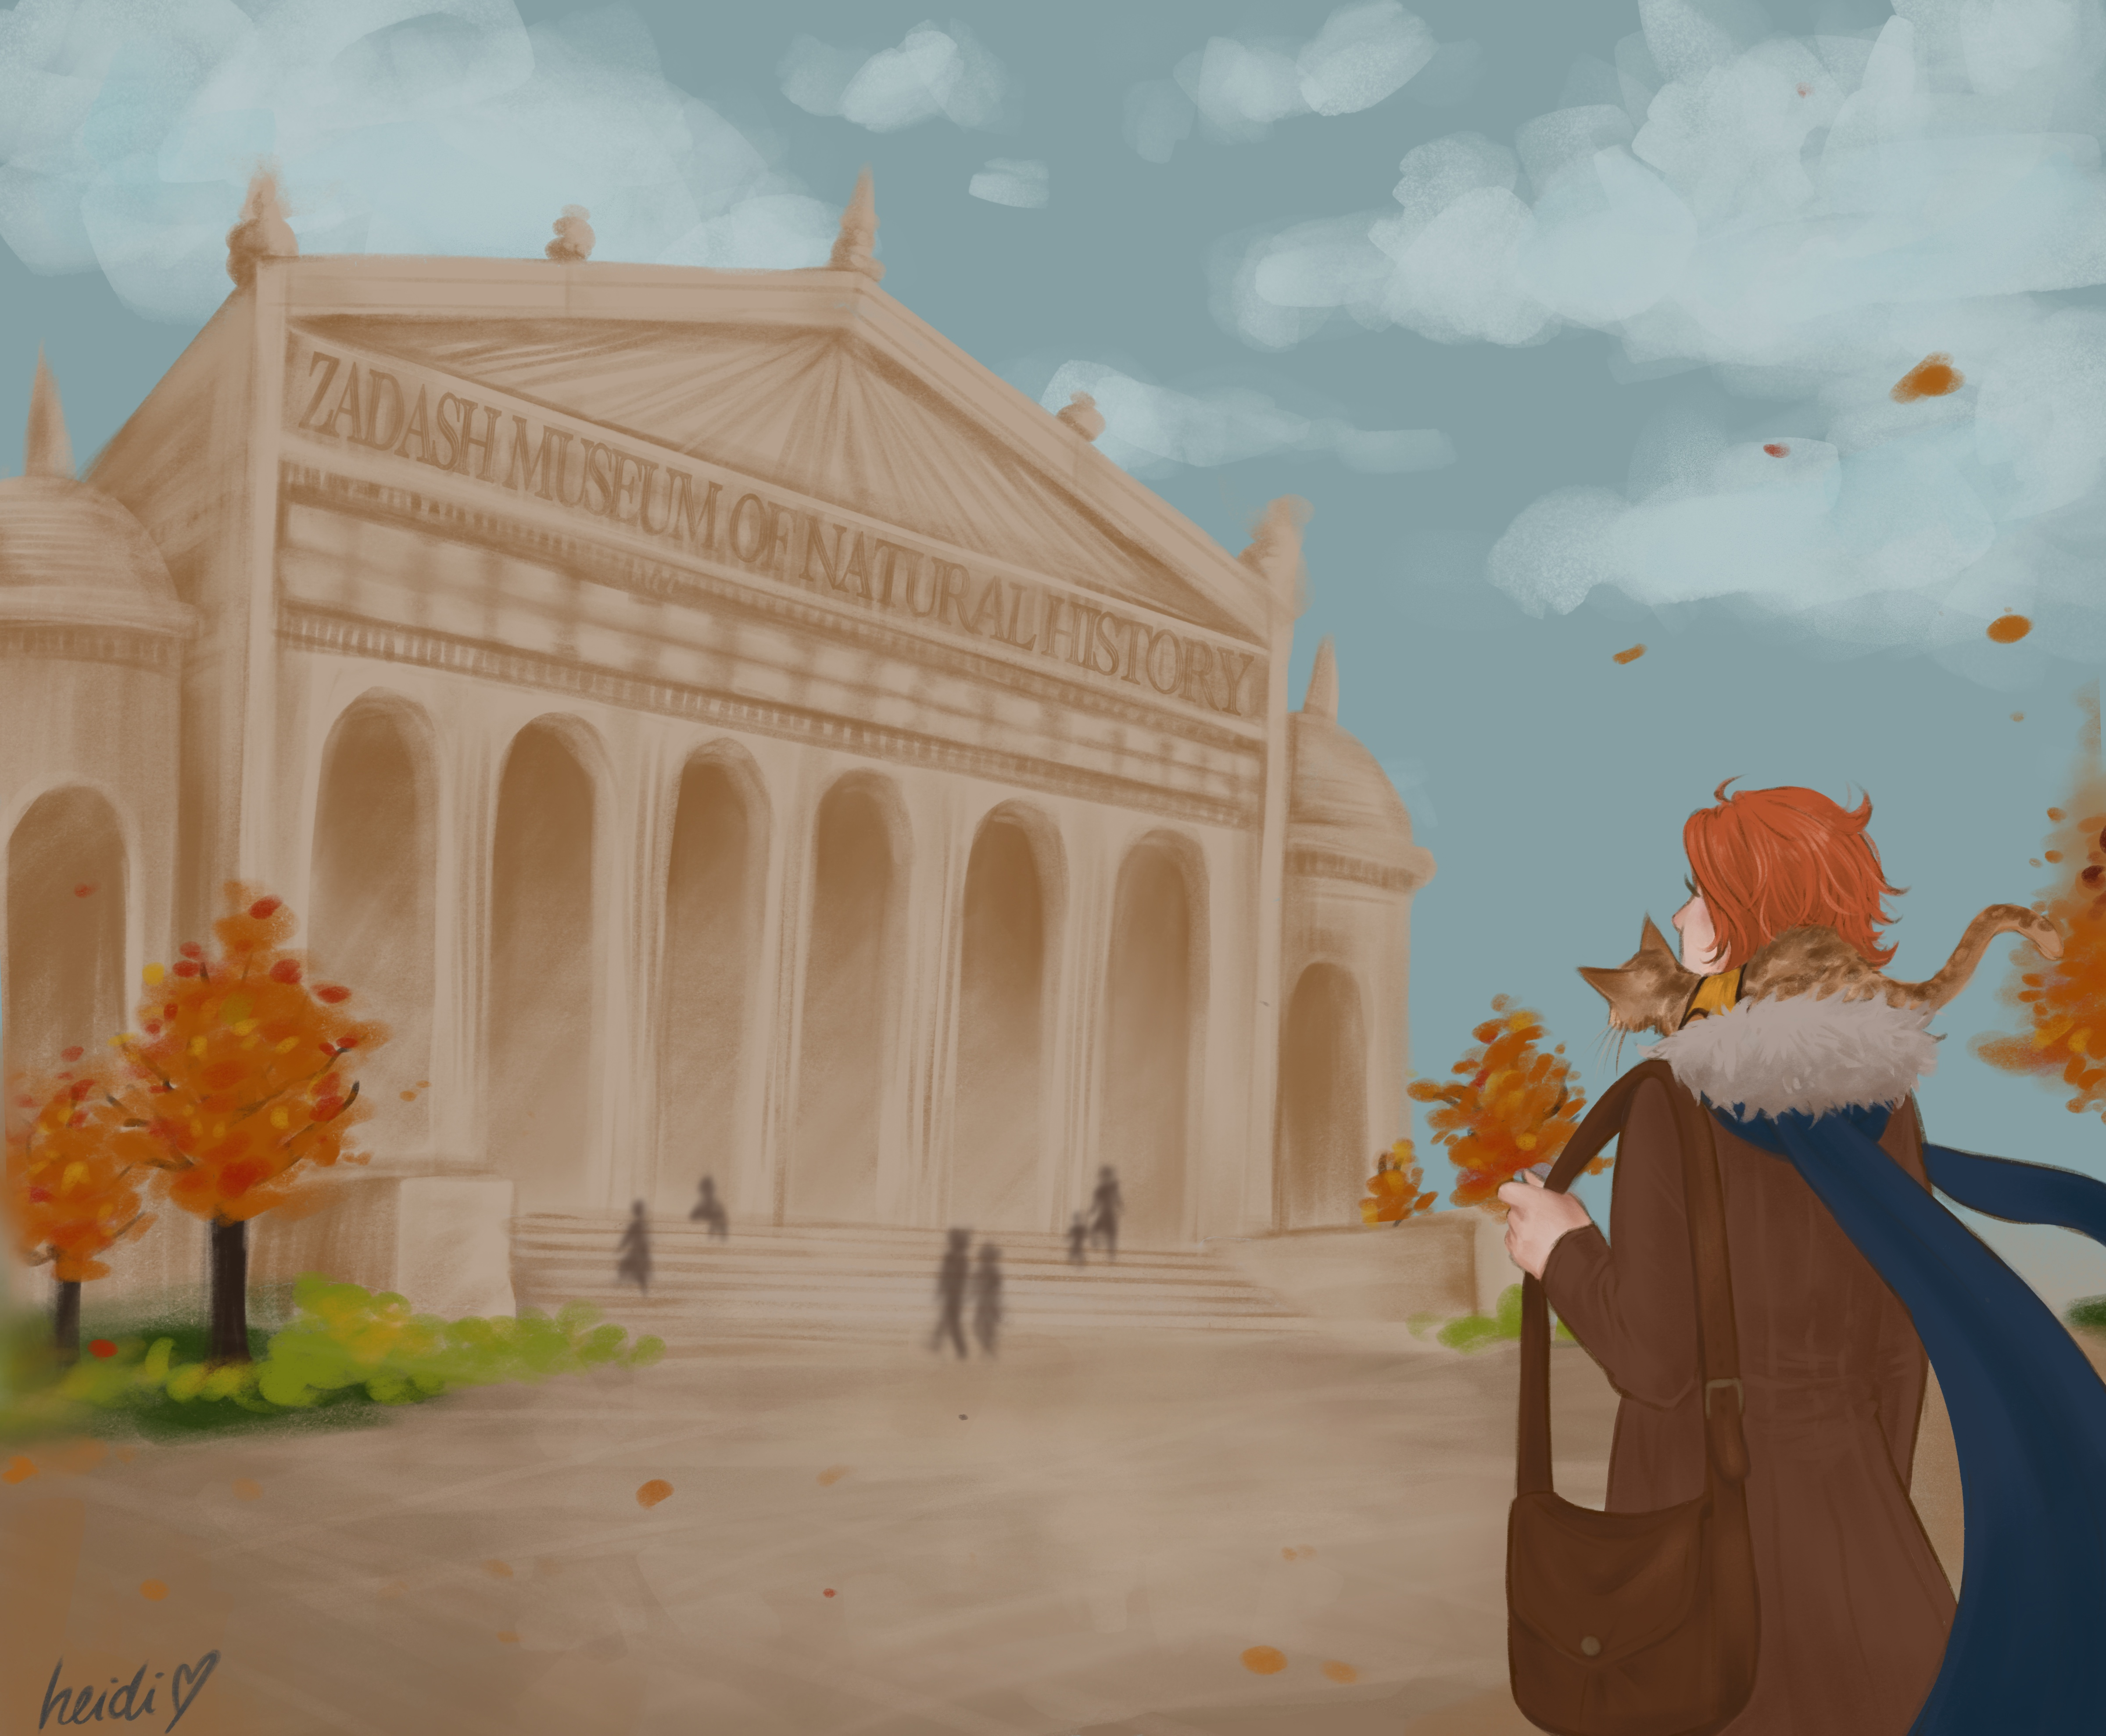 Art of Caleb arriving outside the museum by @heidzdraws on twitter